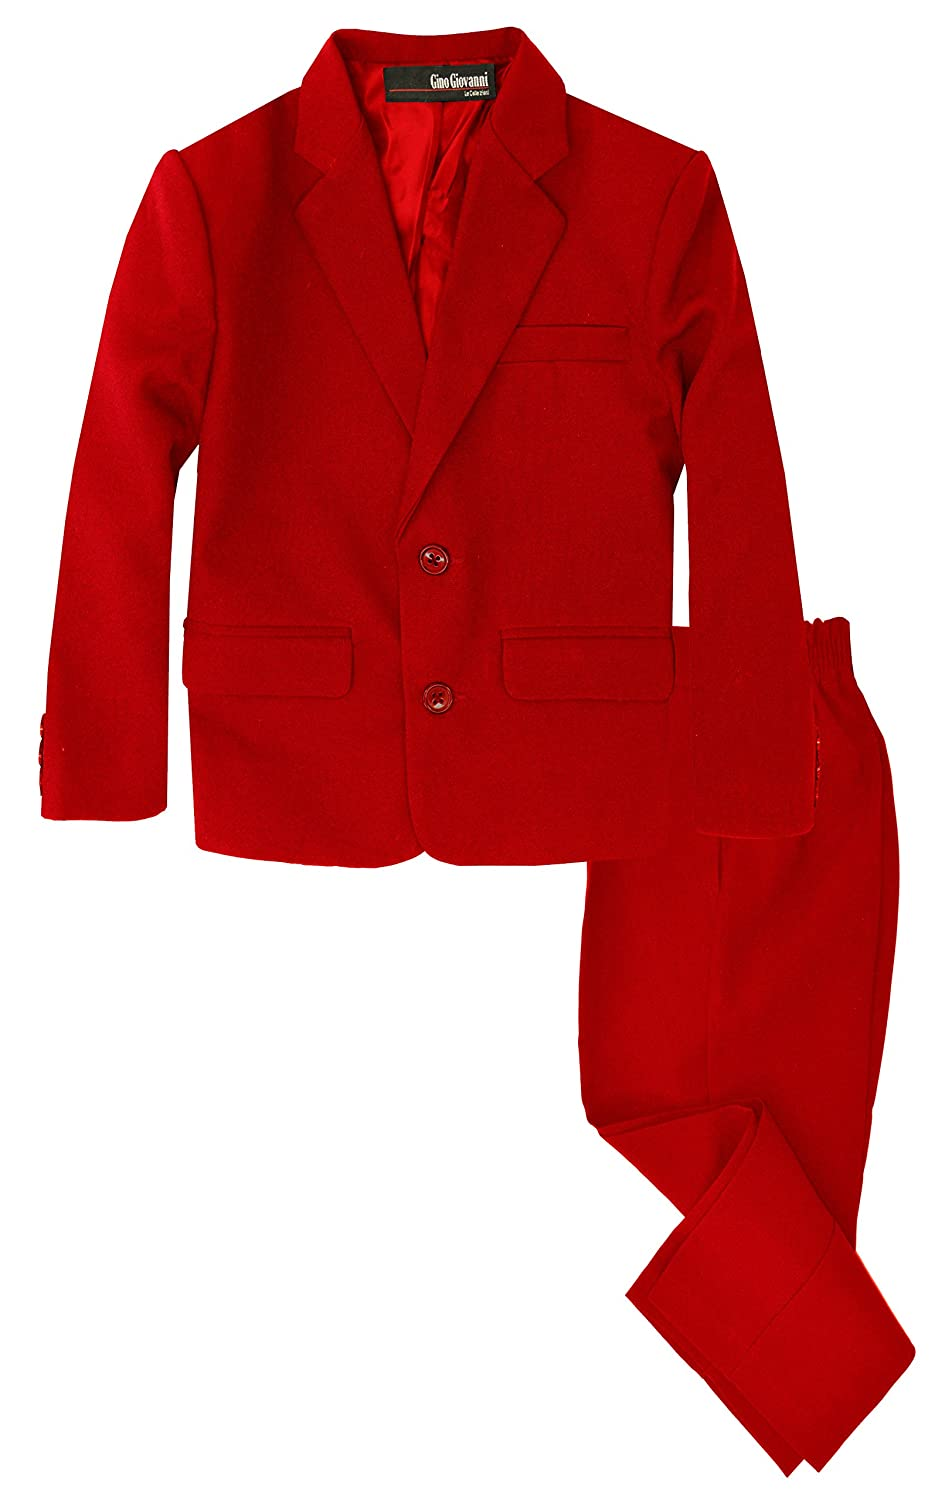 Gino Giovanni Baby Boys 2 Piece Suit Set